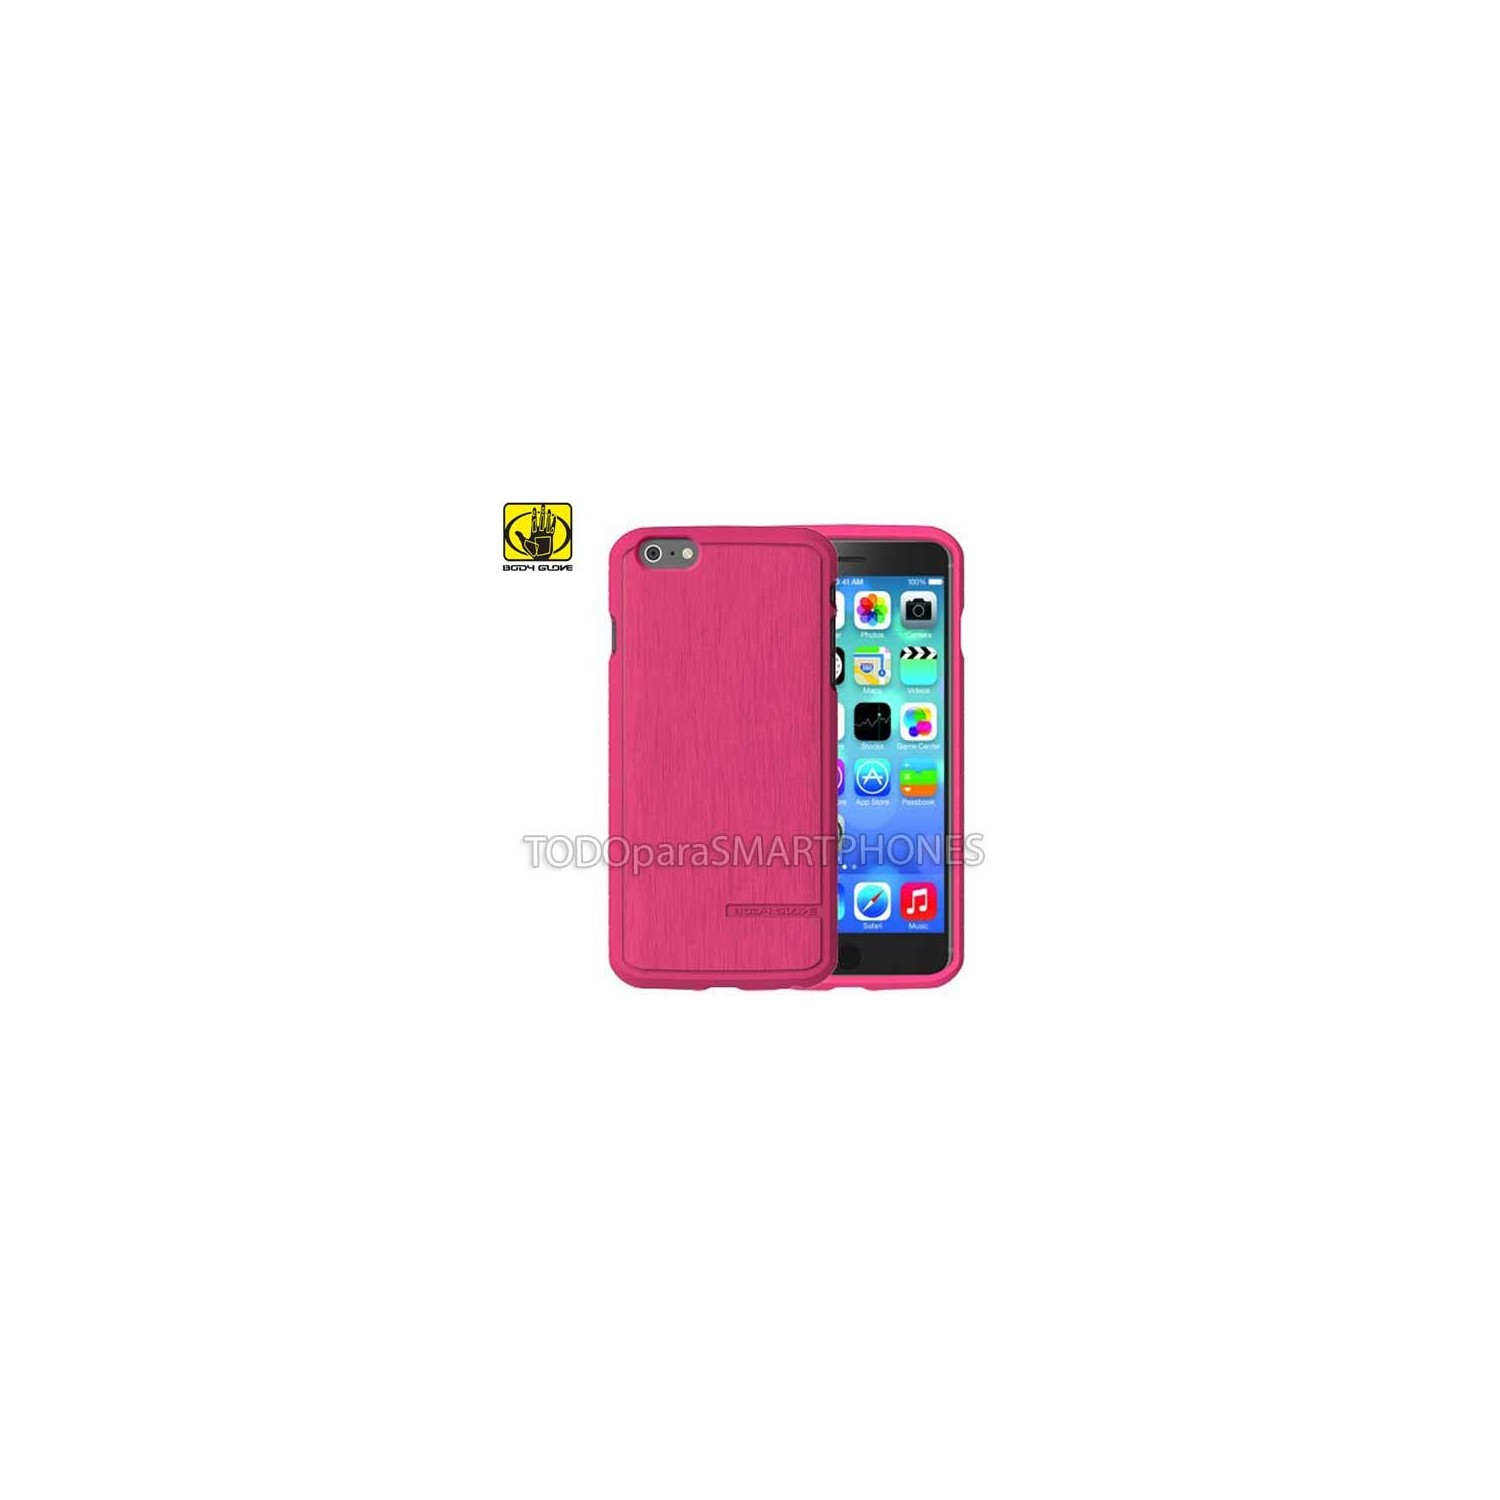 Case - Body Glove for iPhone 6 Plus Satin Cranberry